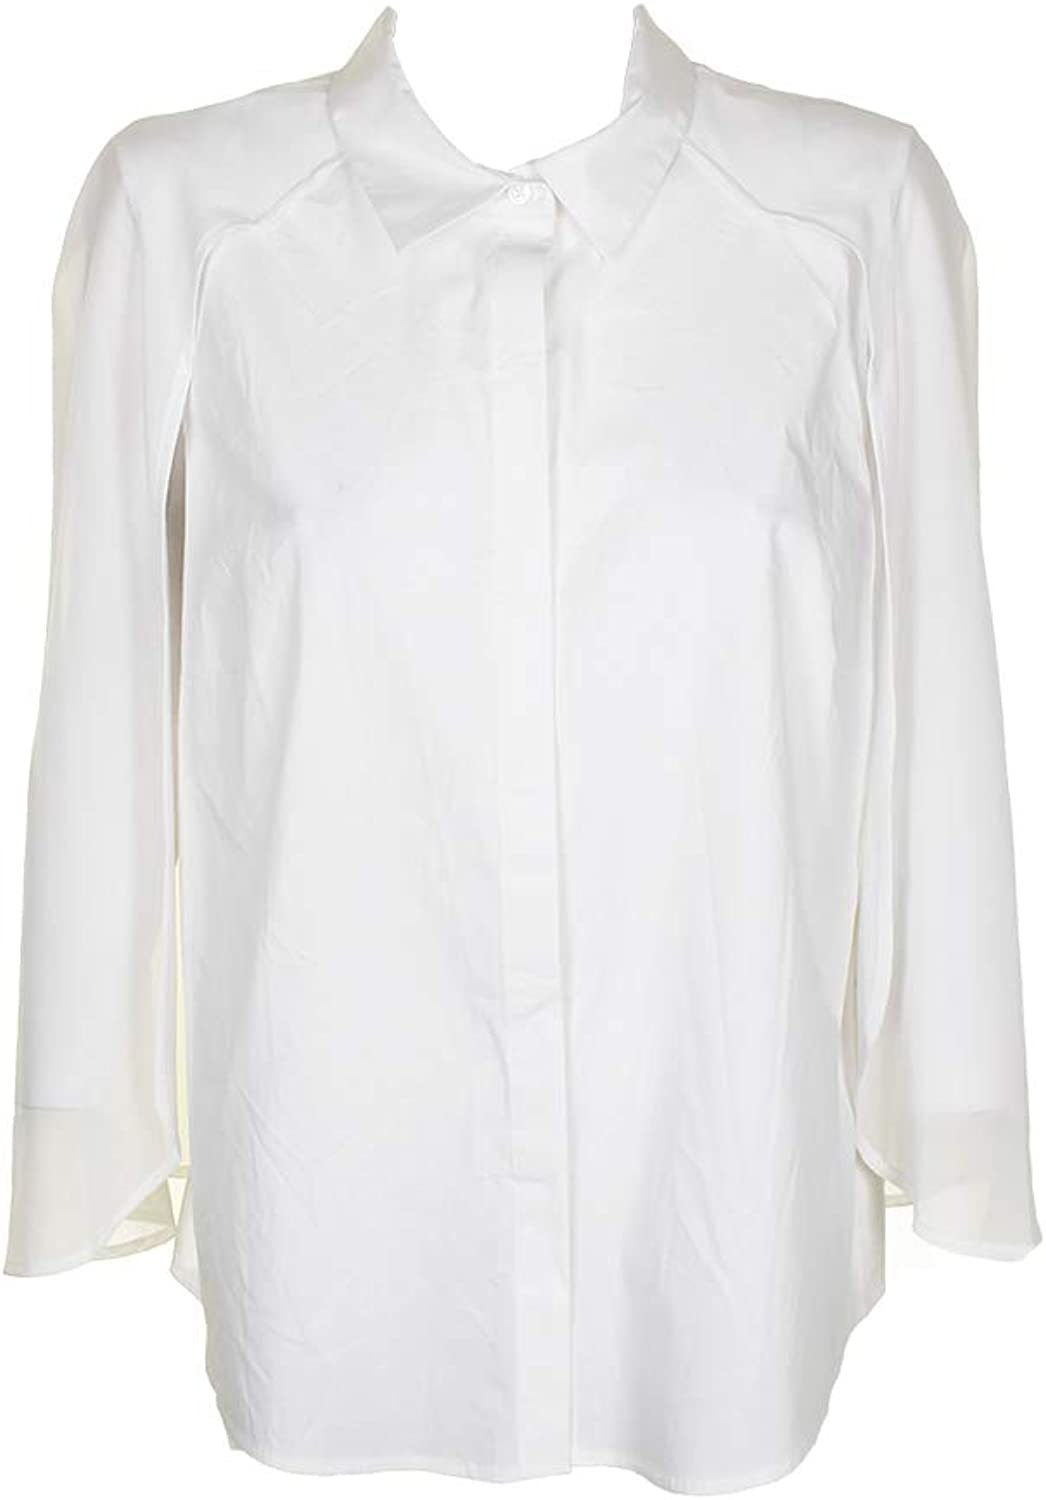 DKNY Womens Wear to Work Day to Night ButtonDown Top White XL